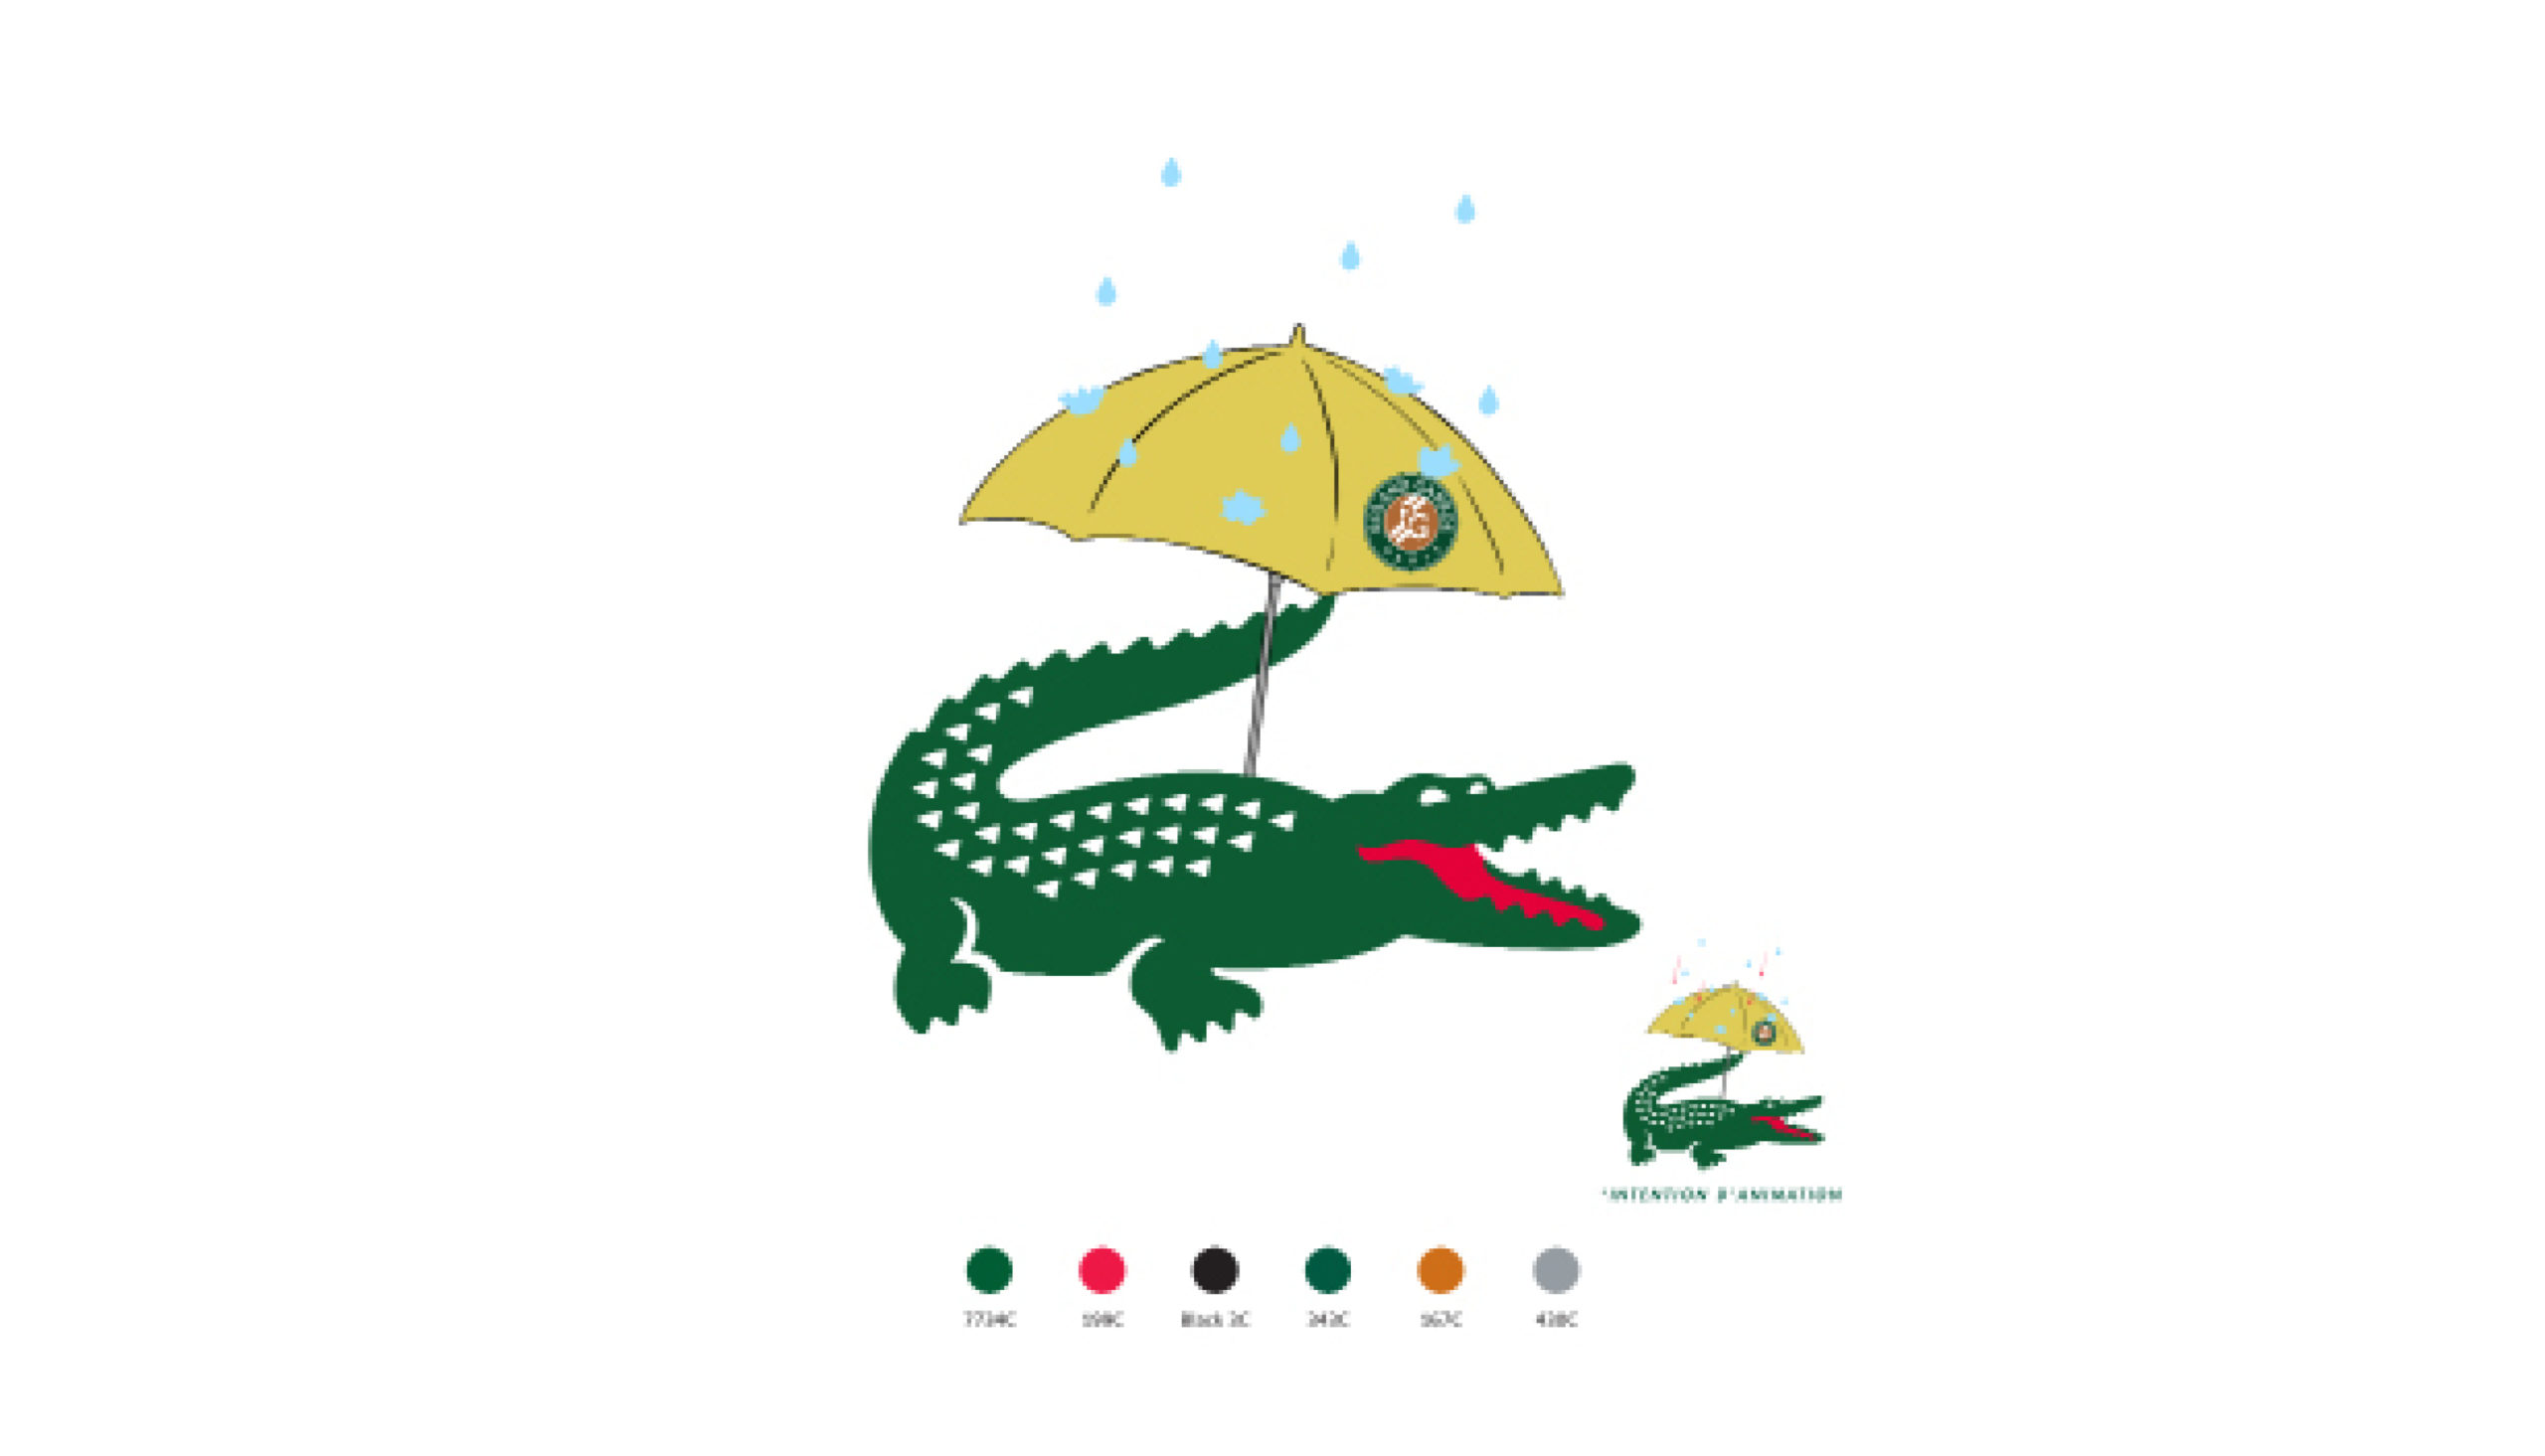 LACOSTE_STICKERS_HOBBYNOTE_R_0413